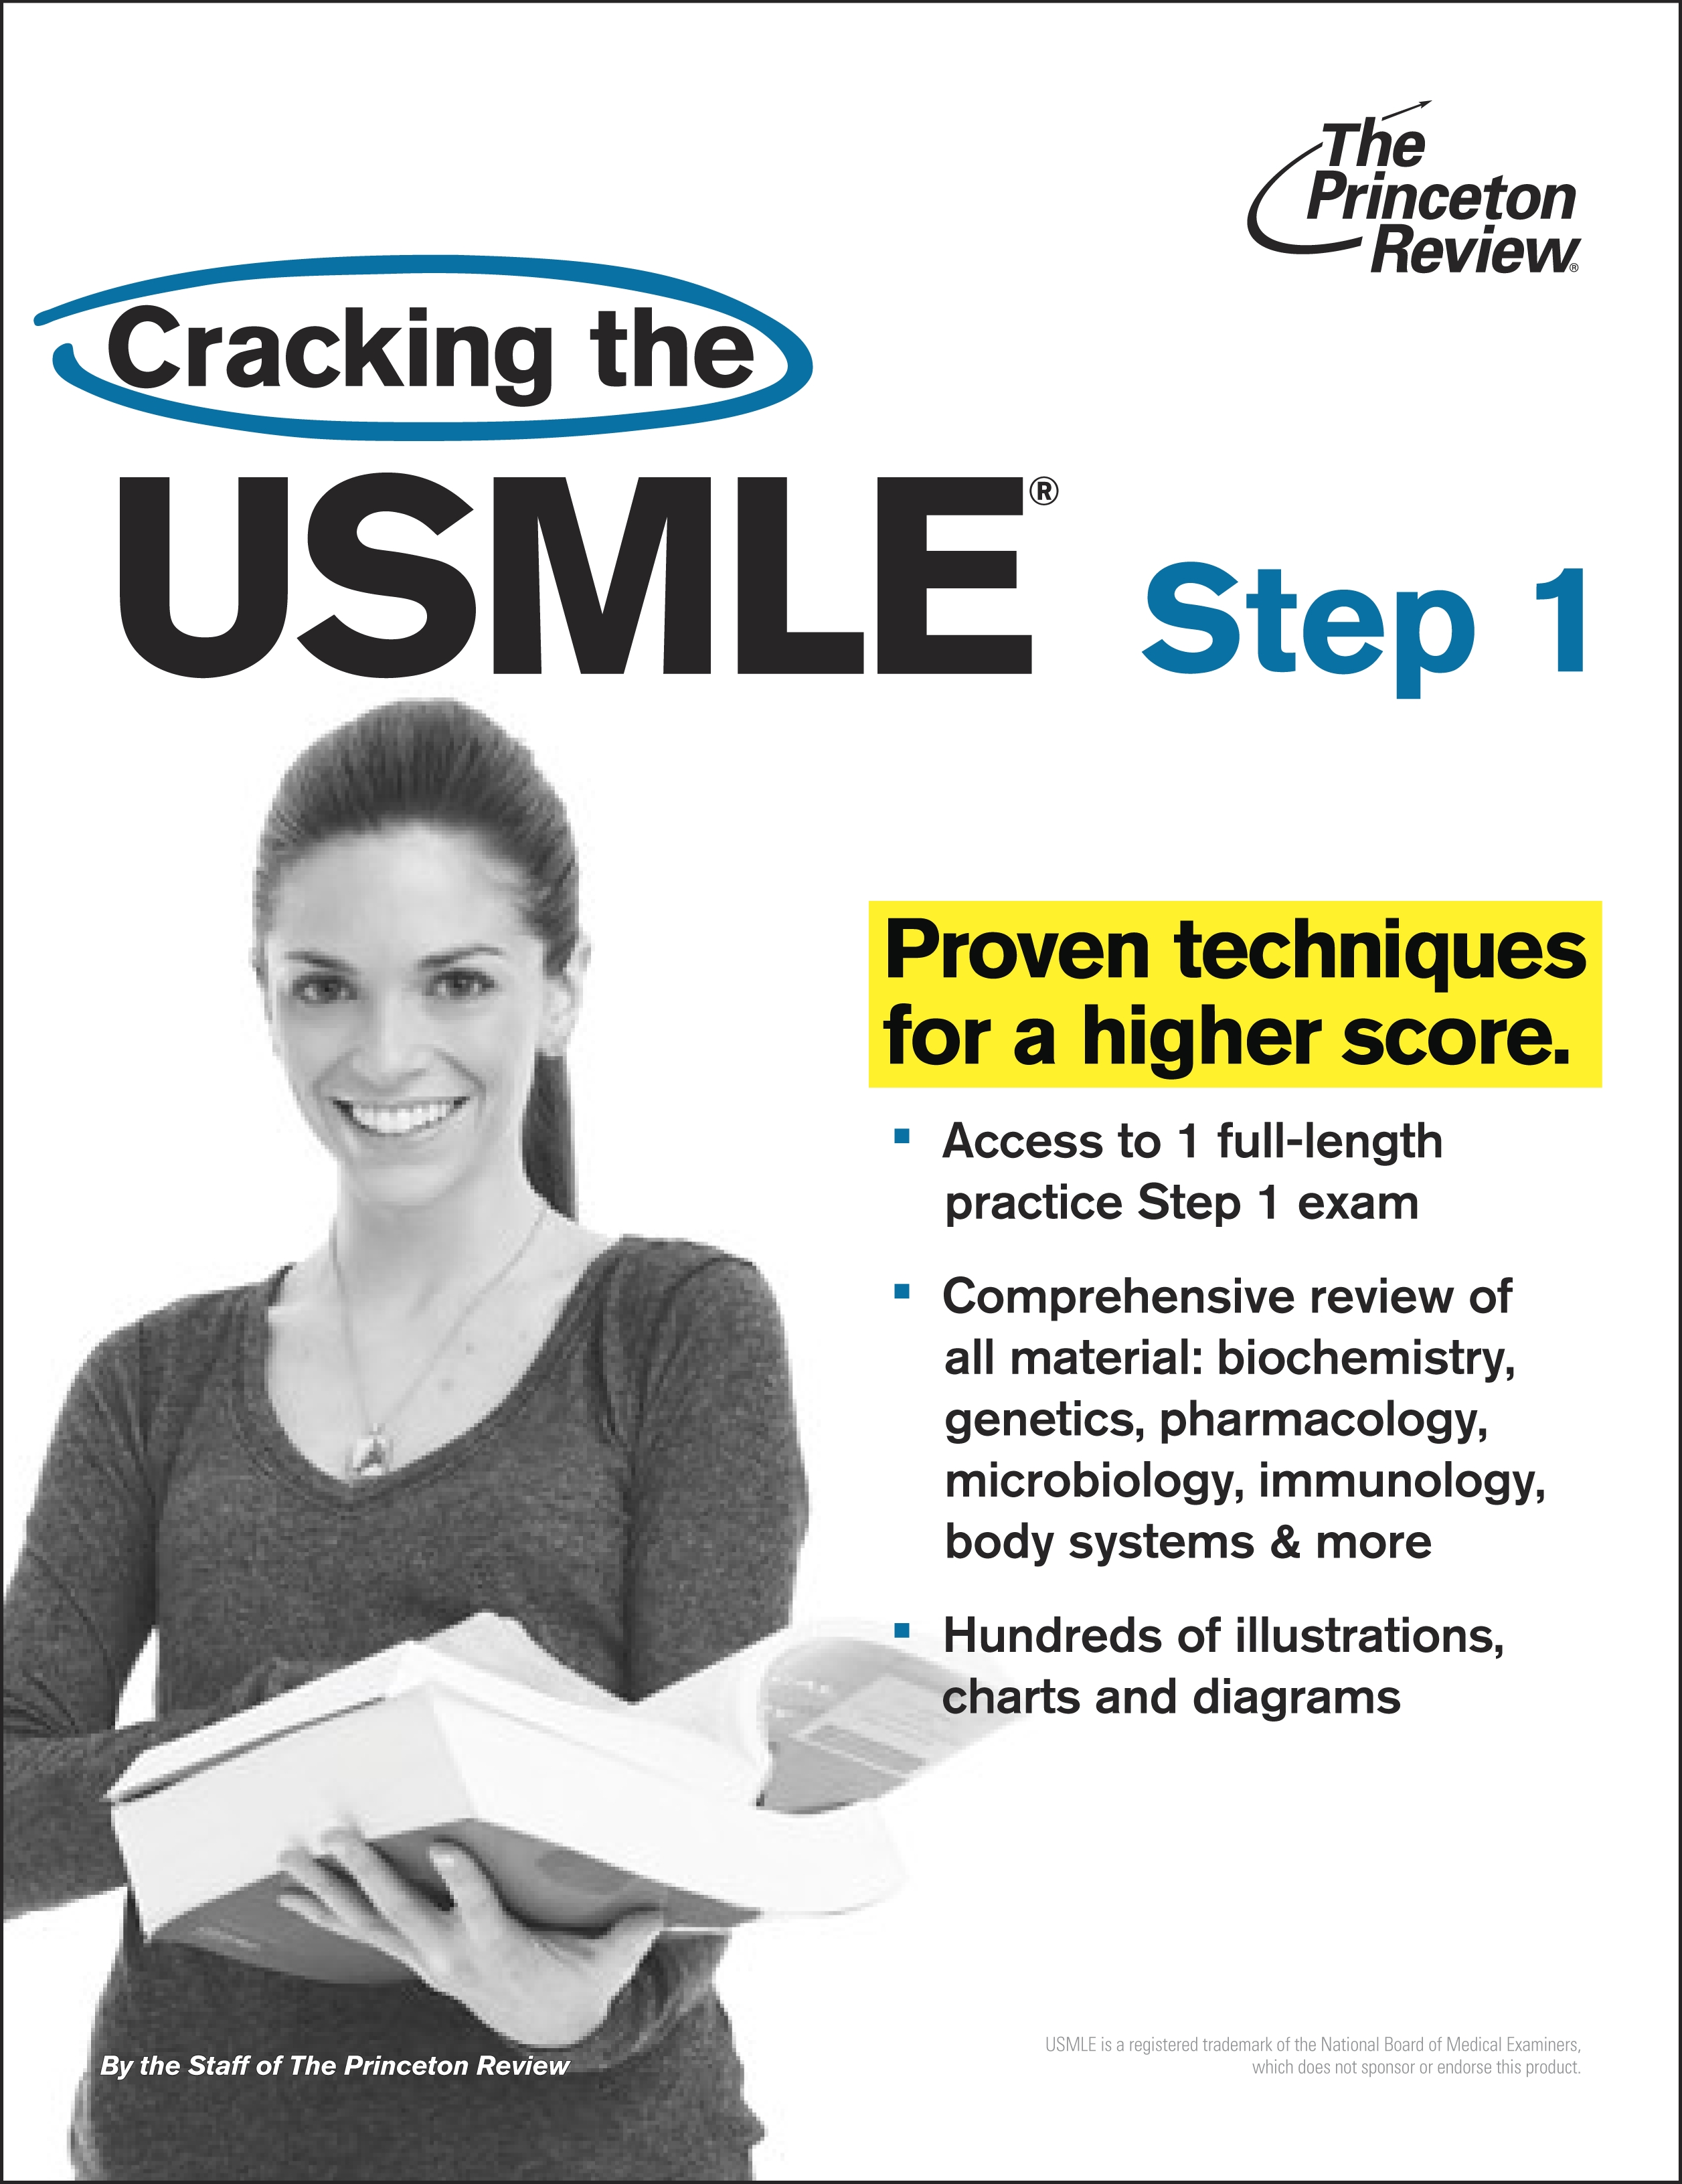 Cracking The Usmle, Step 1 by Princeton Review - Penguin Books New